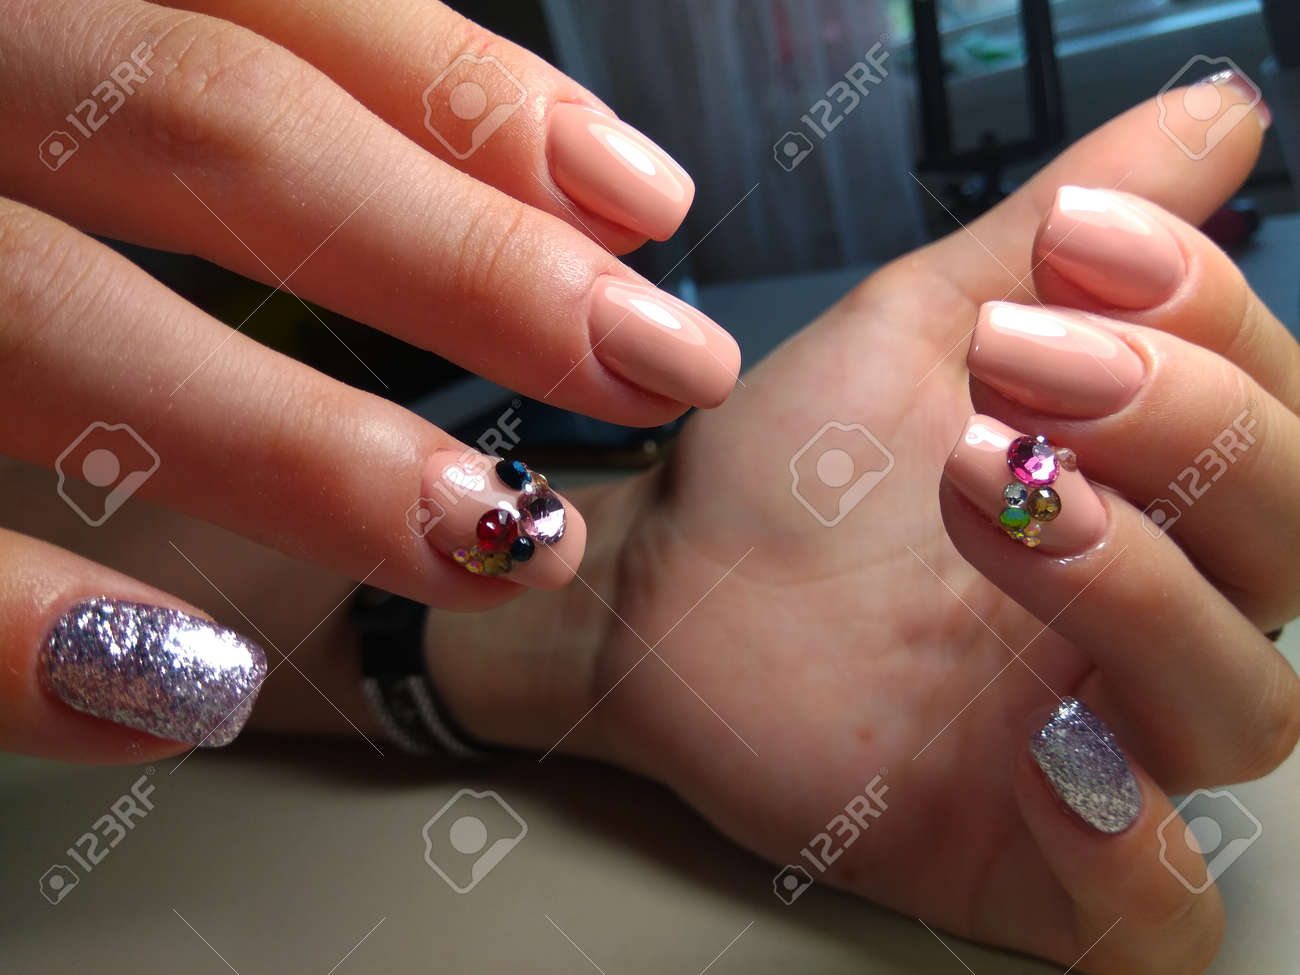 Gentle Manicure Nail Design Gel With Lacquer Stock Photo, Picture ...